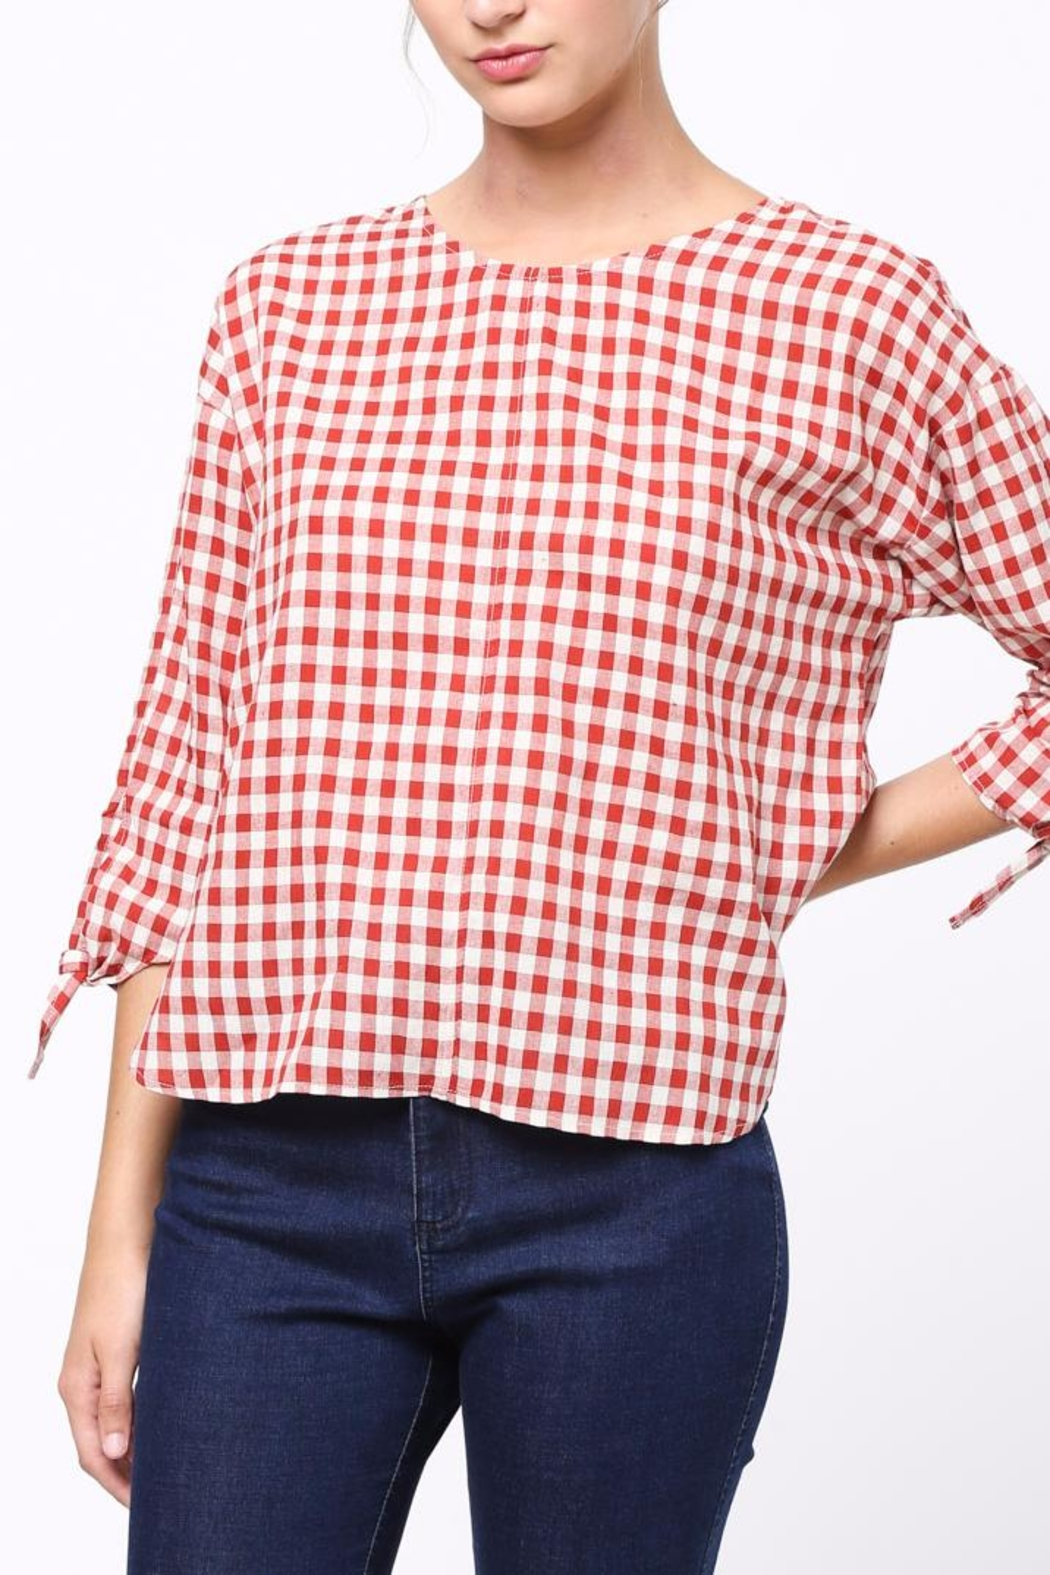 Movint Tie-Sleeve Detailed Top - Front Cropped Image